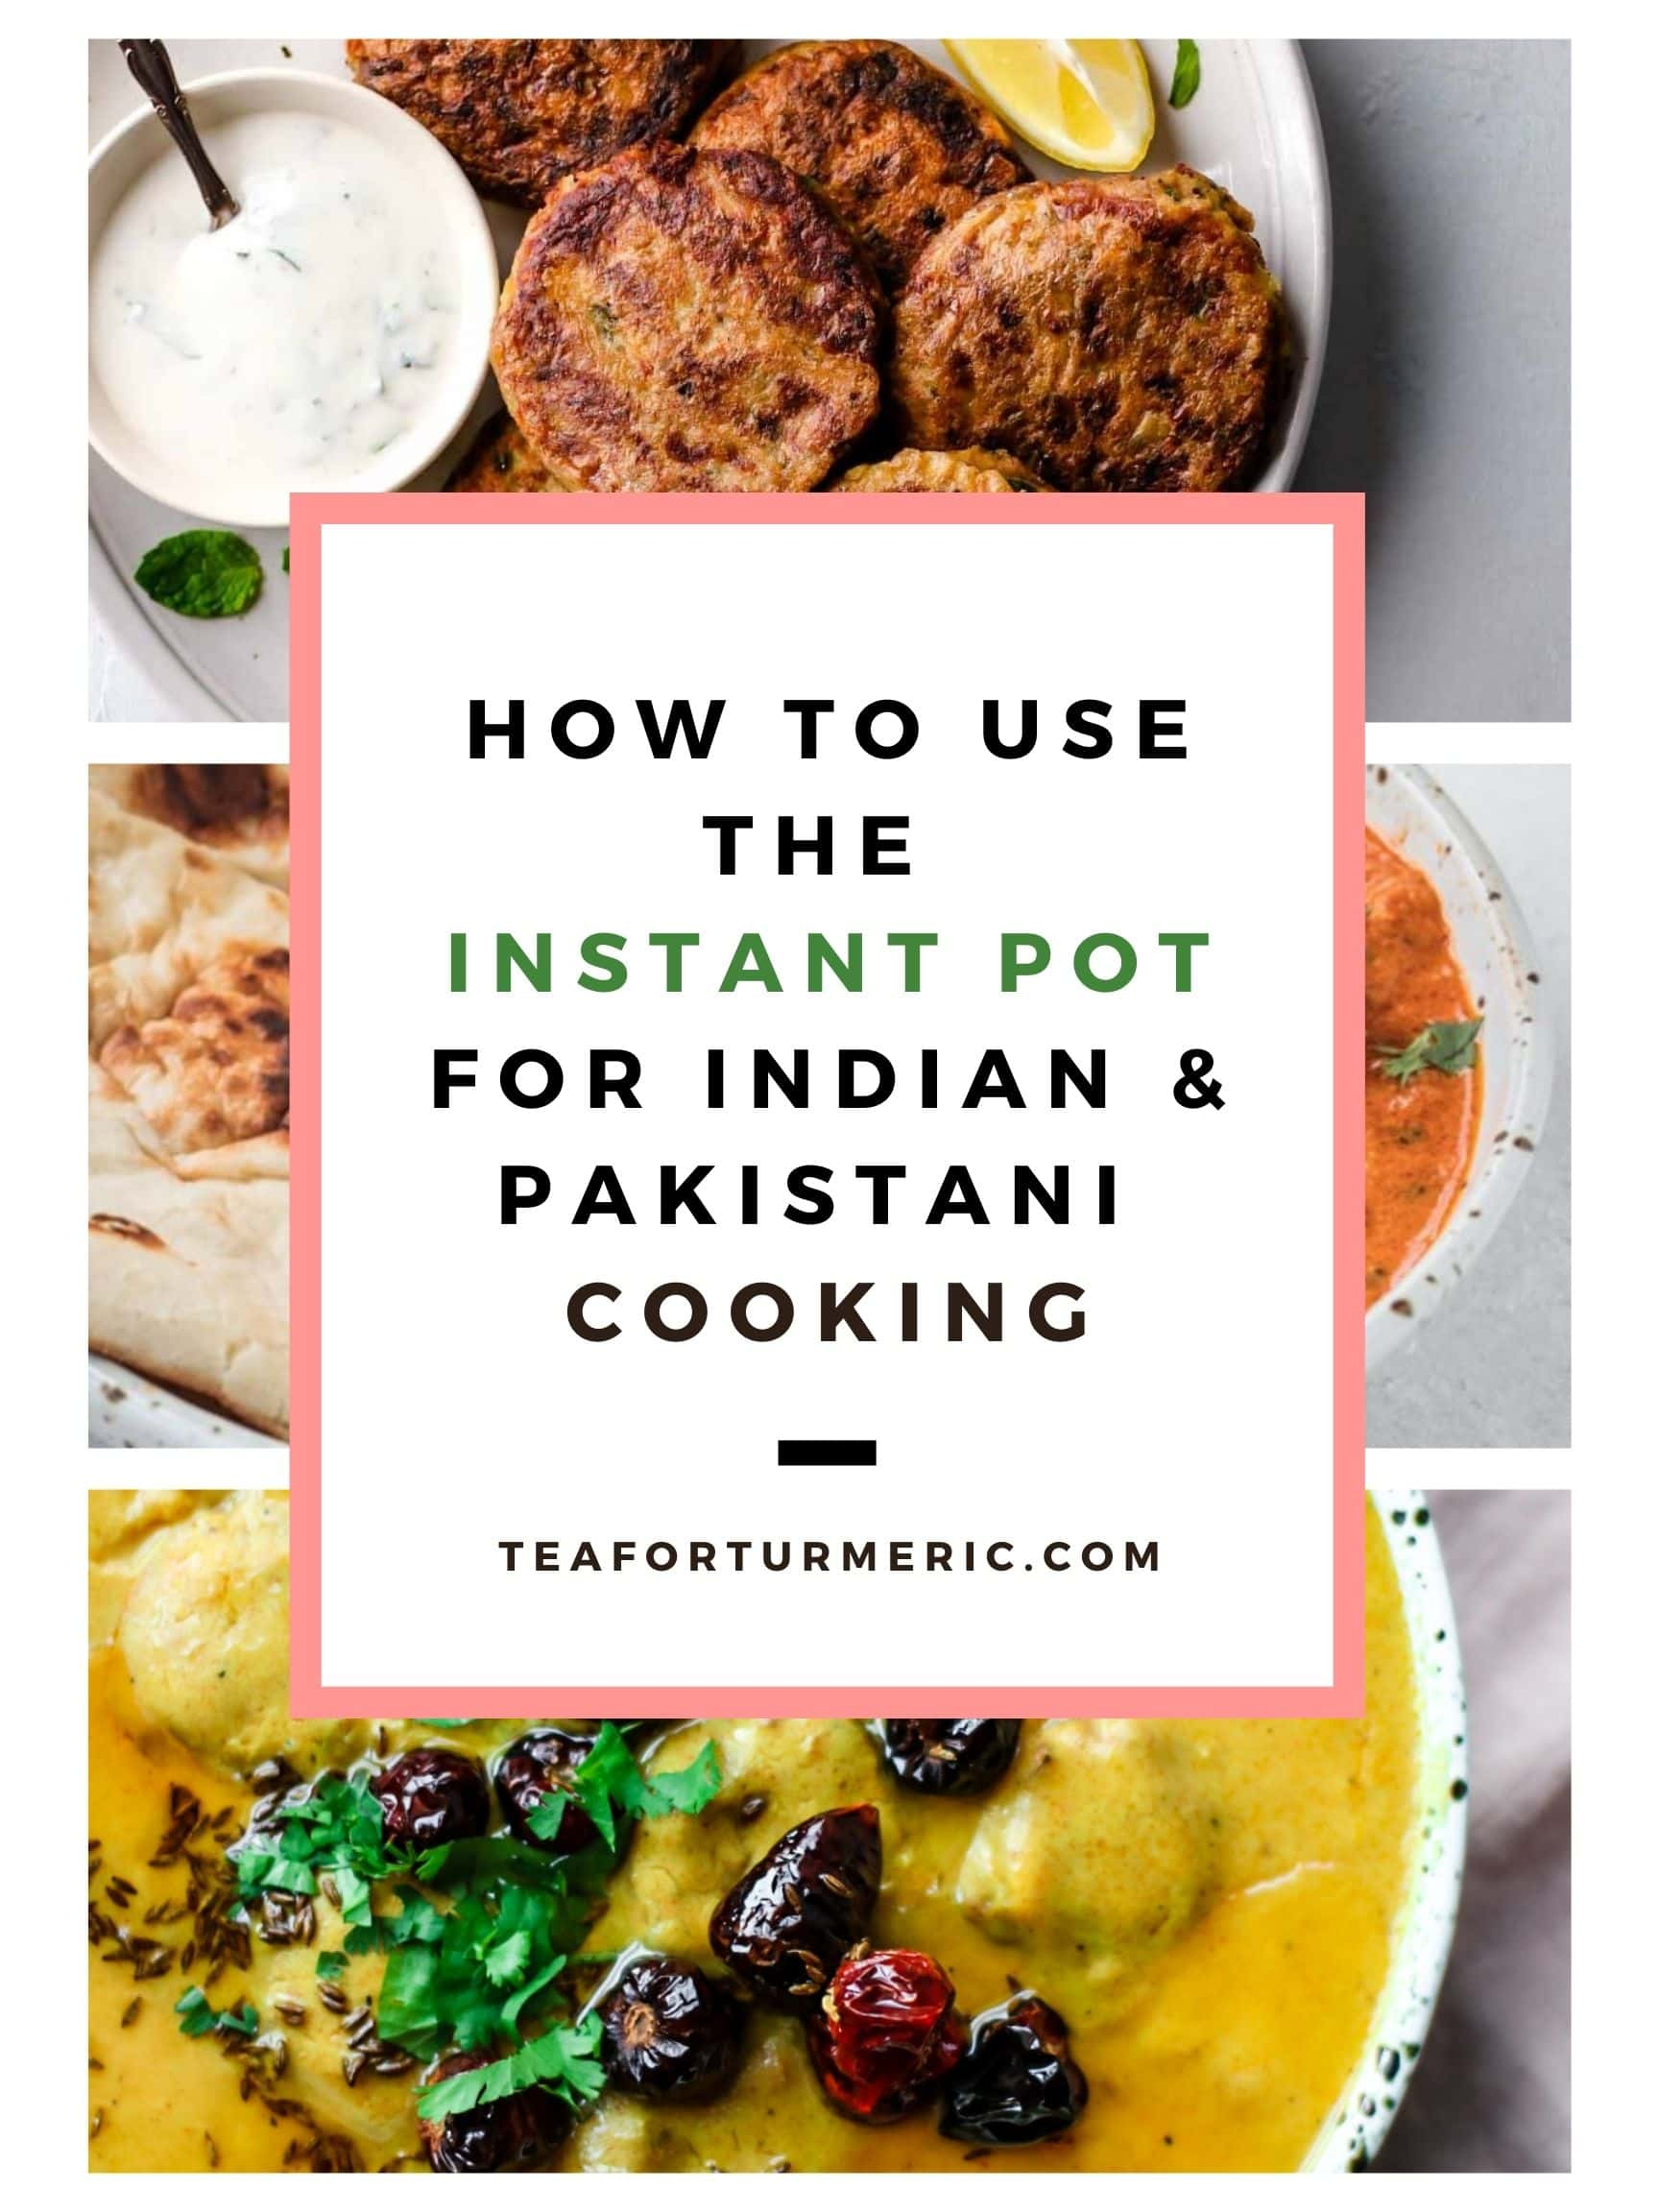 How to use instant pot for indian and pakistani cooking